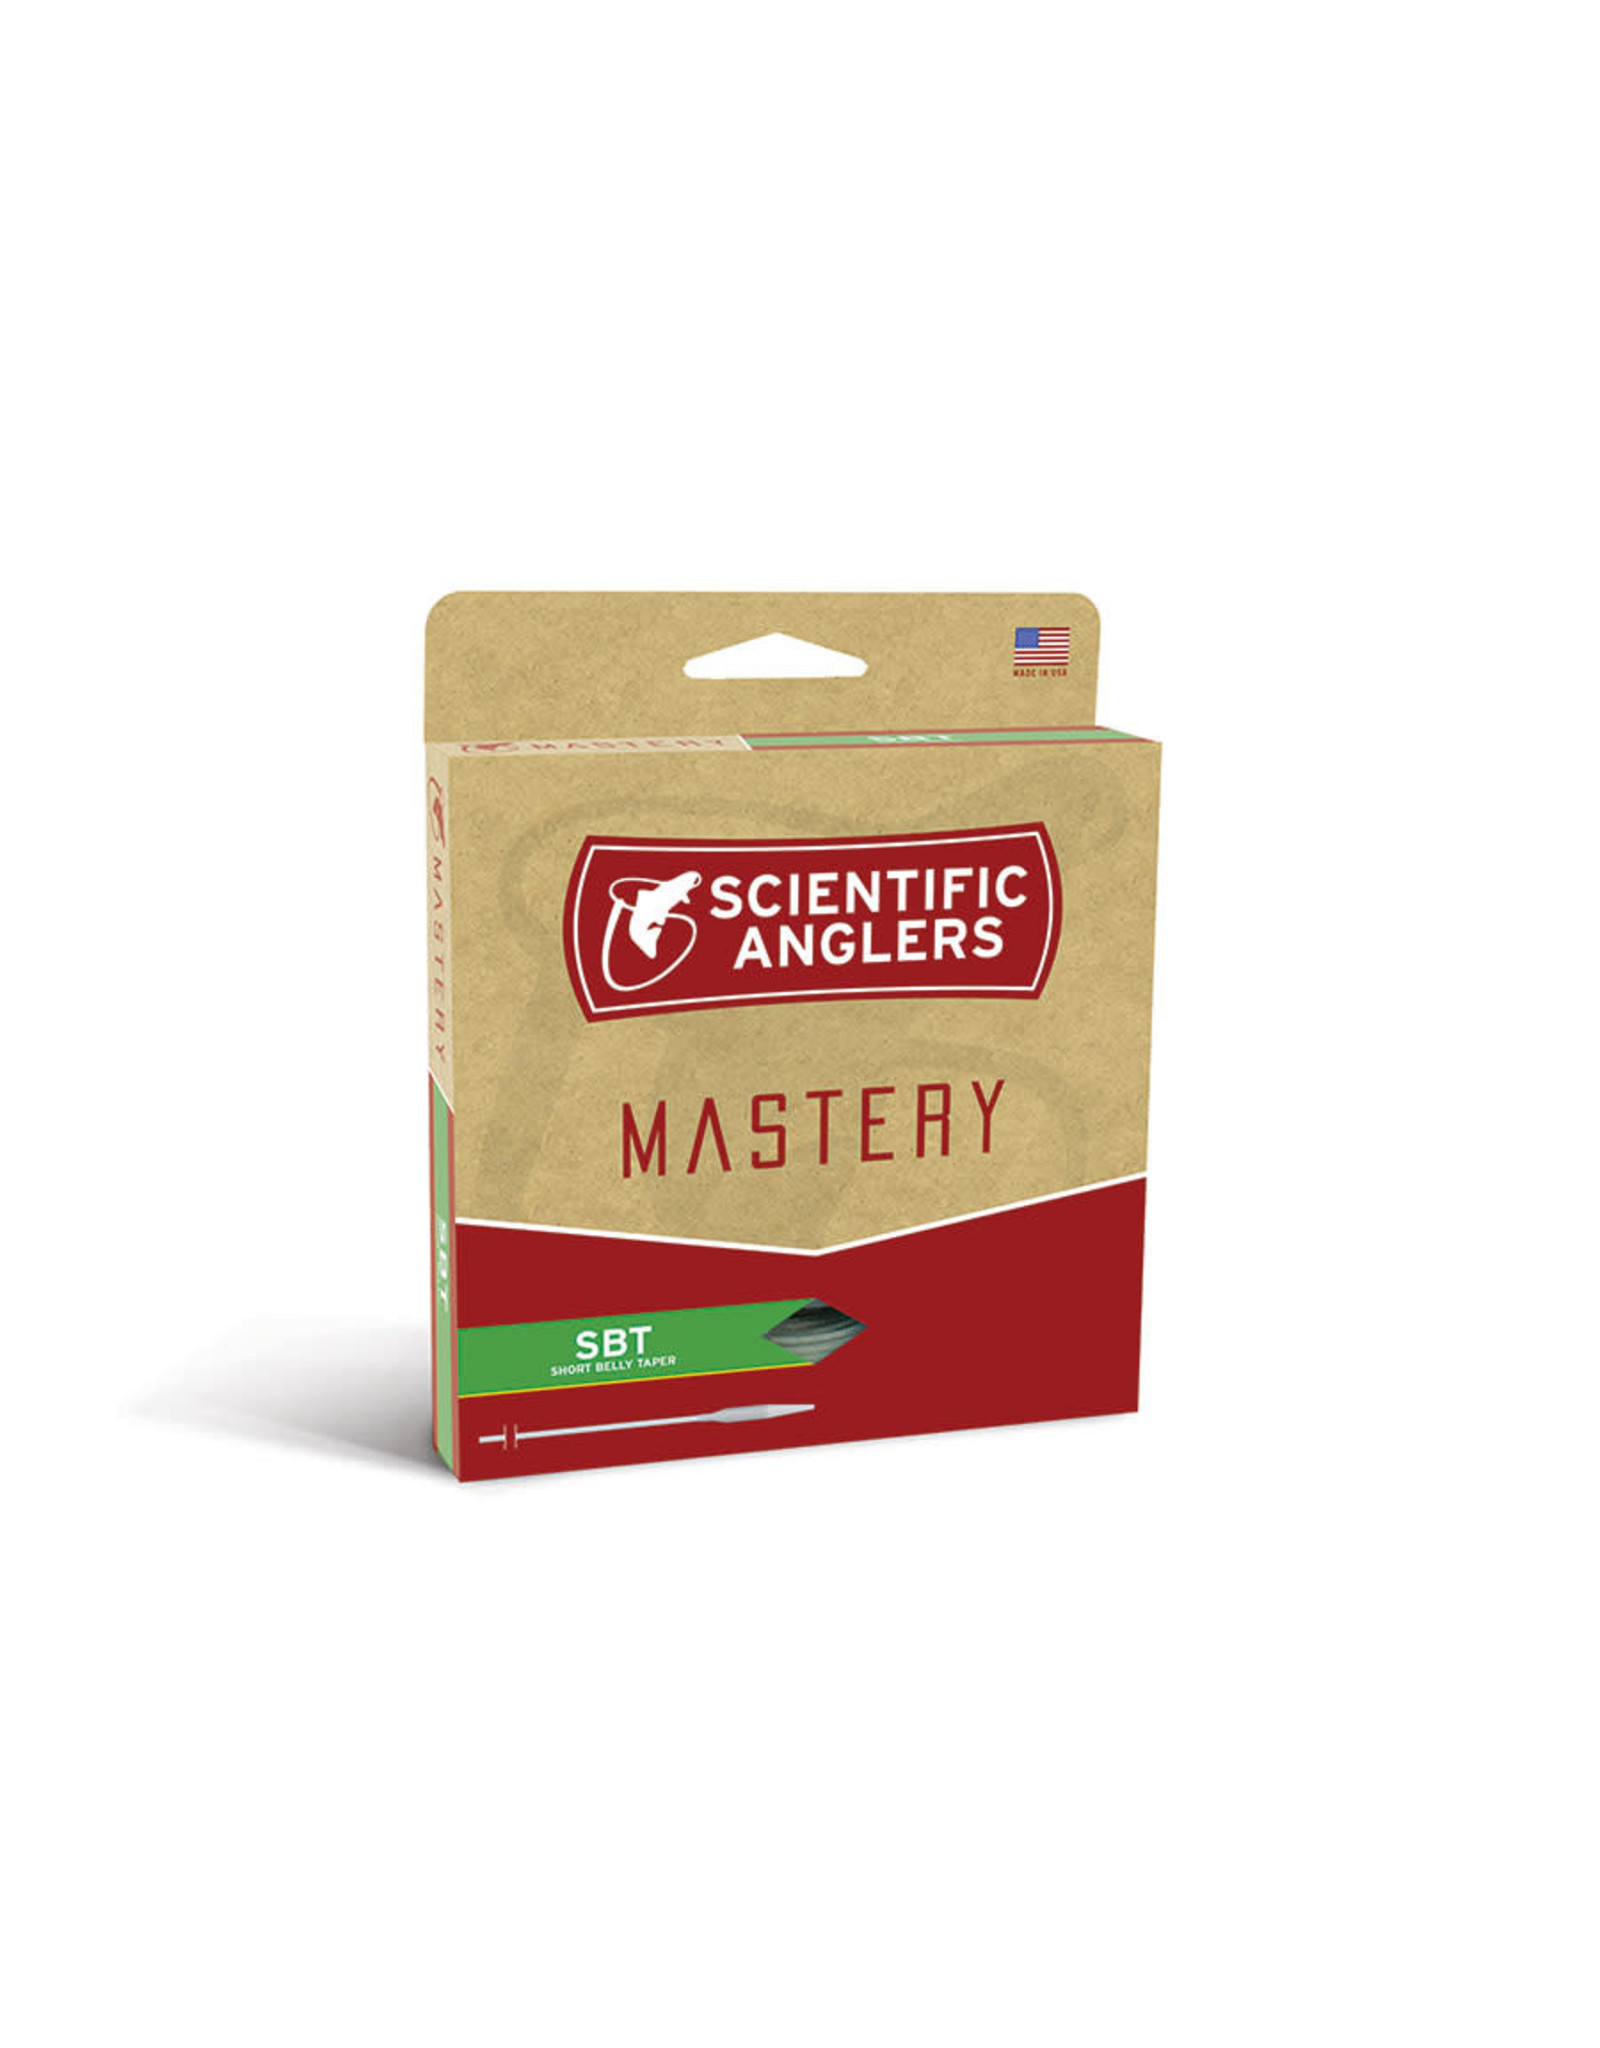 SCIENTIFIC ANGLERS Mastery SBT